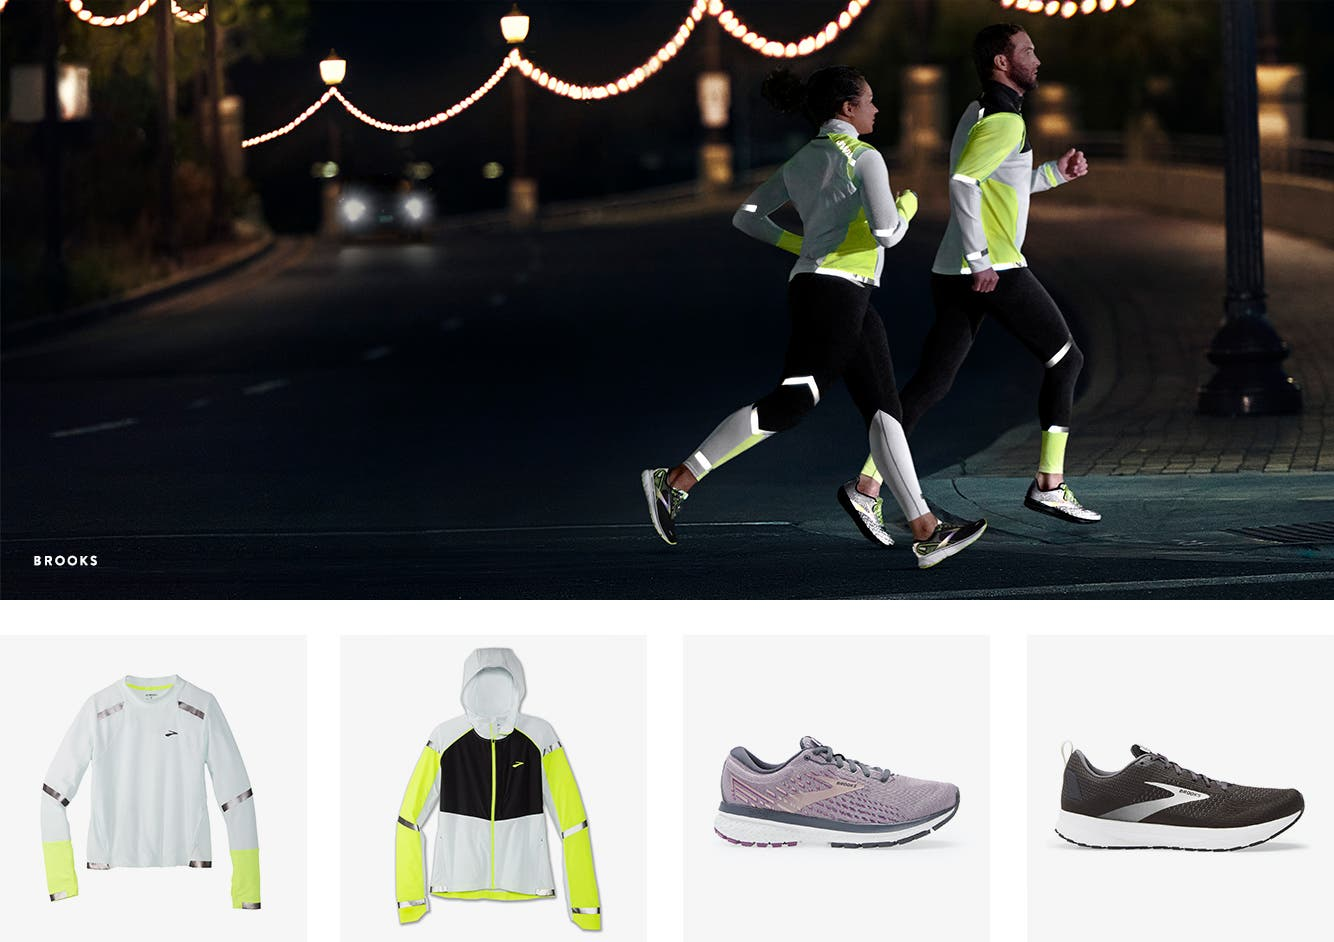 Get into gear: best-selling reflective running gear for extra safety.